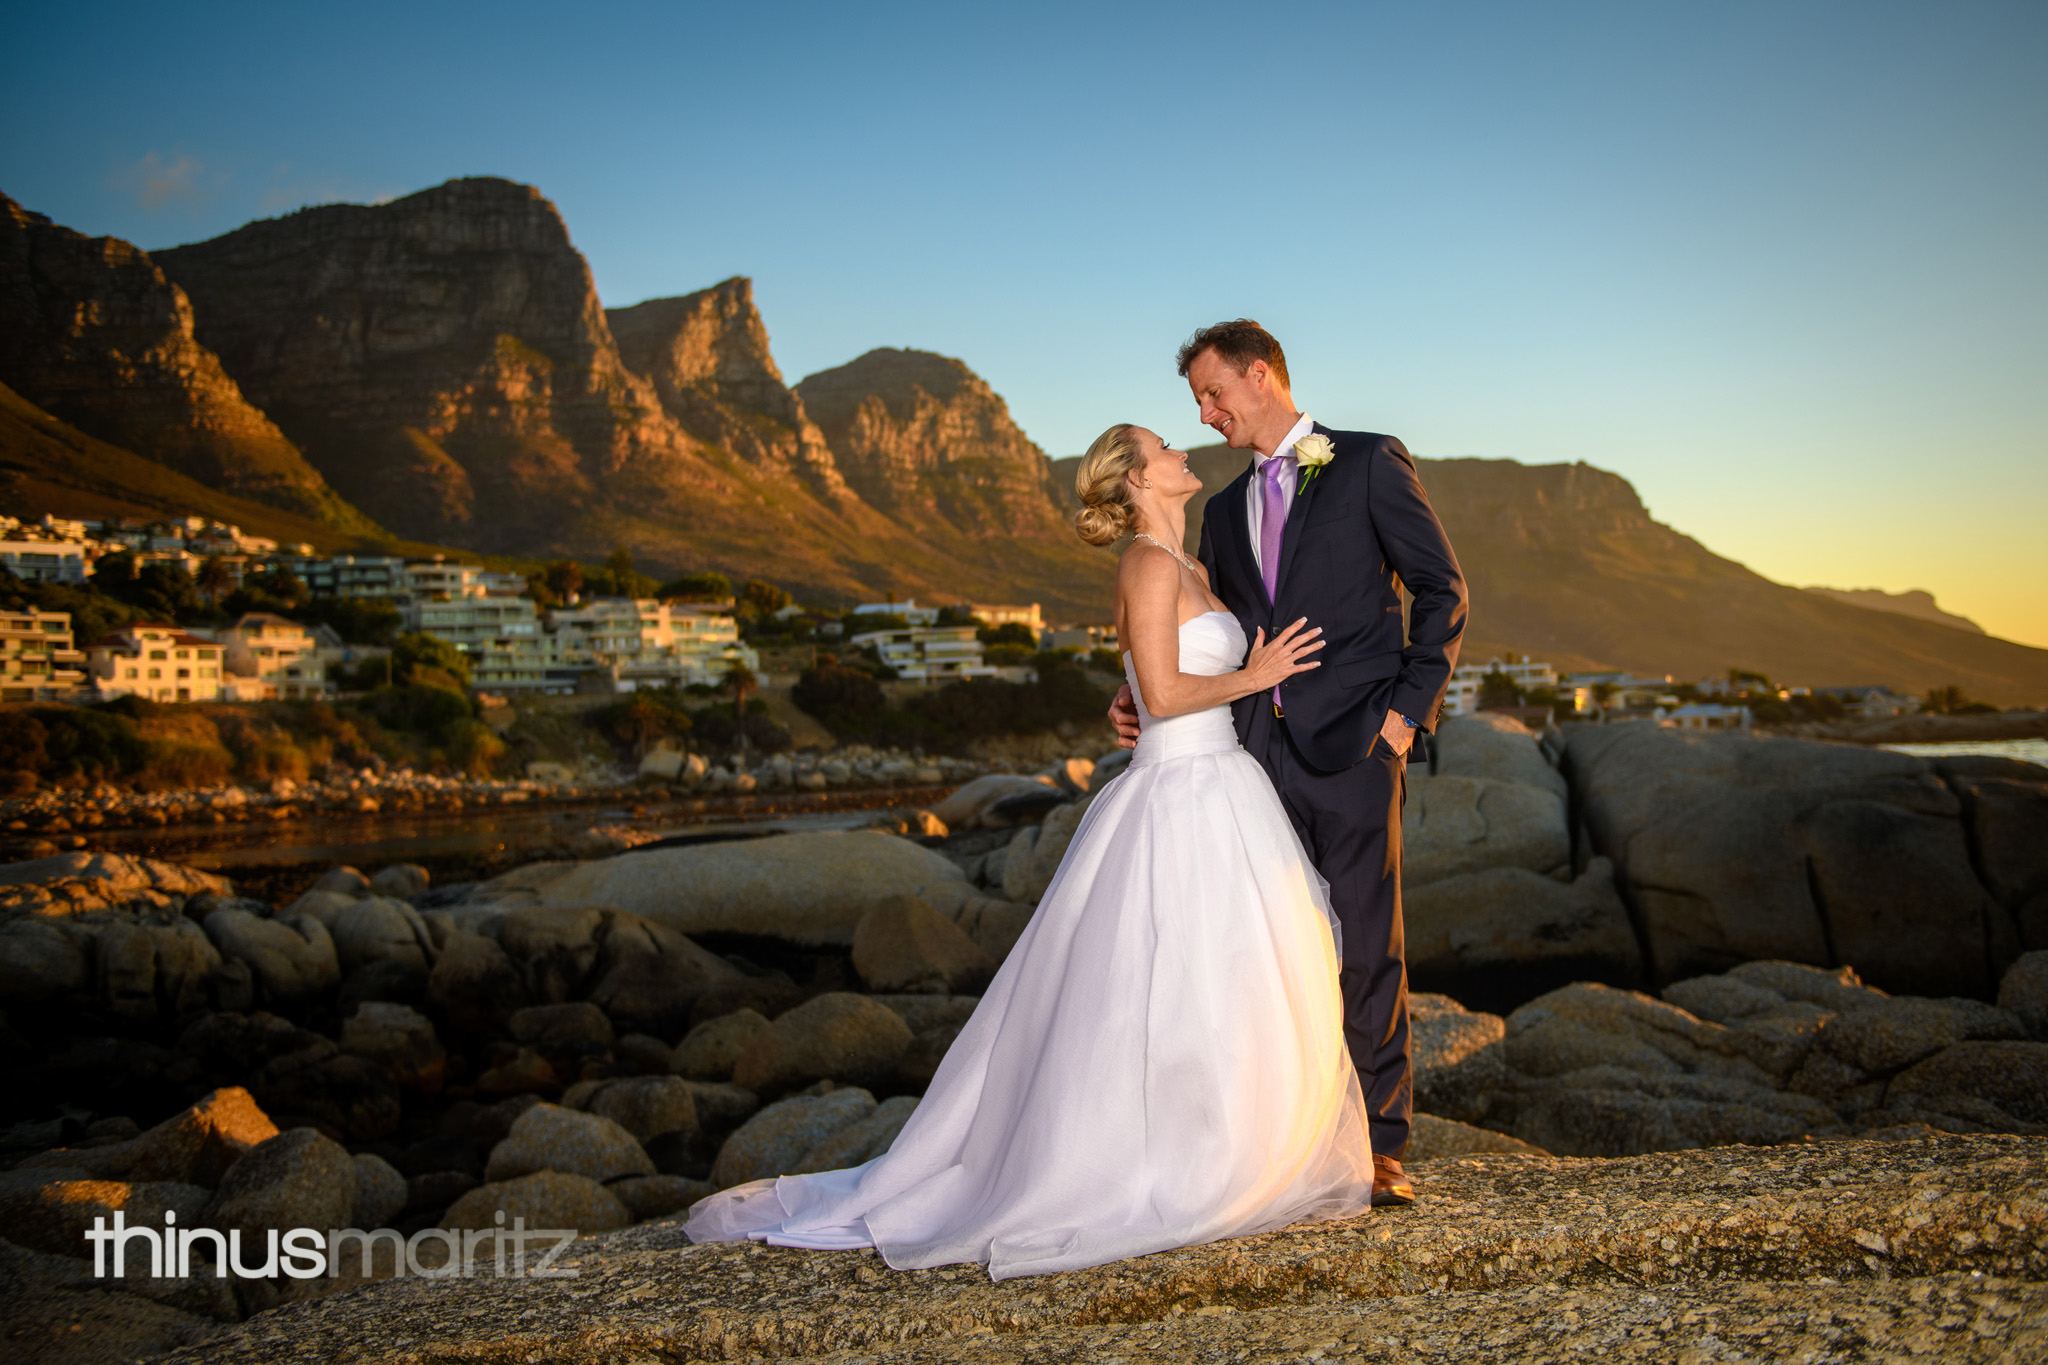 20190203 thinus maritz photography catherine and garth wedding 12 apostles camps bay